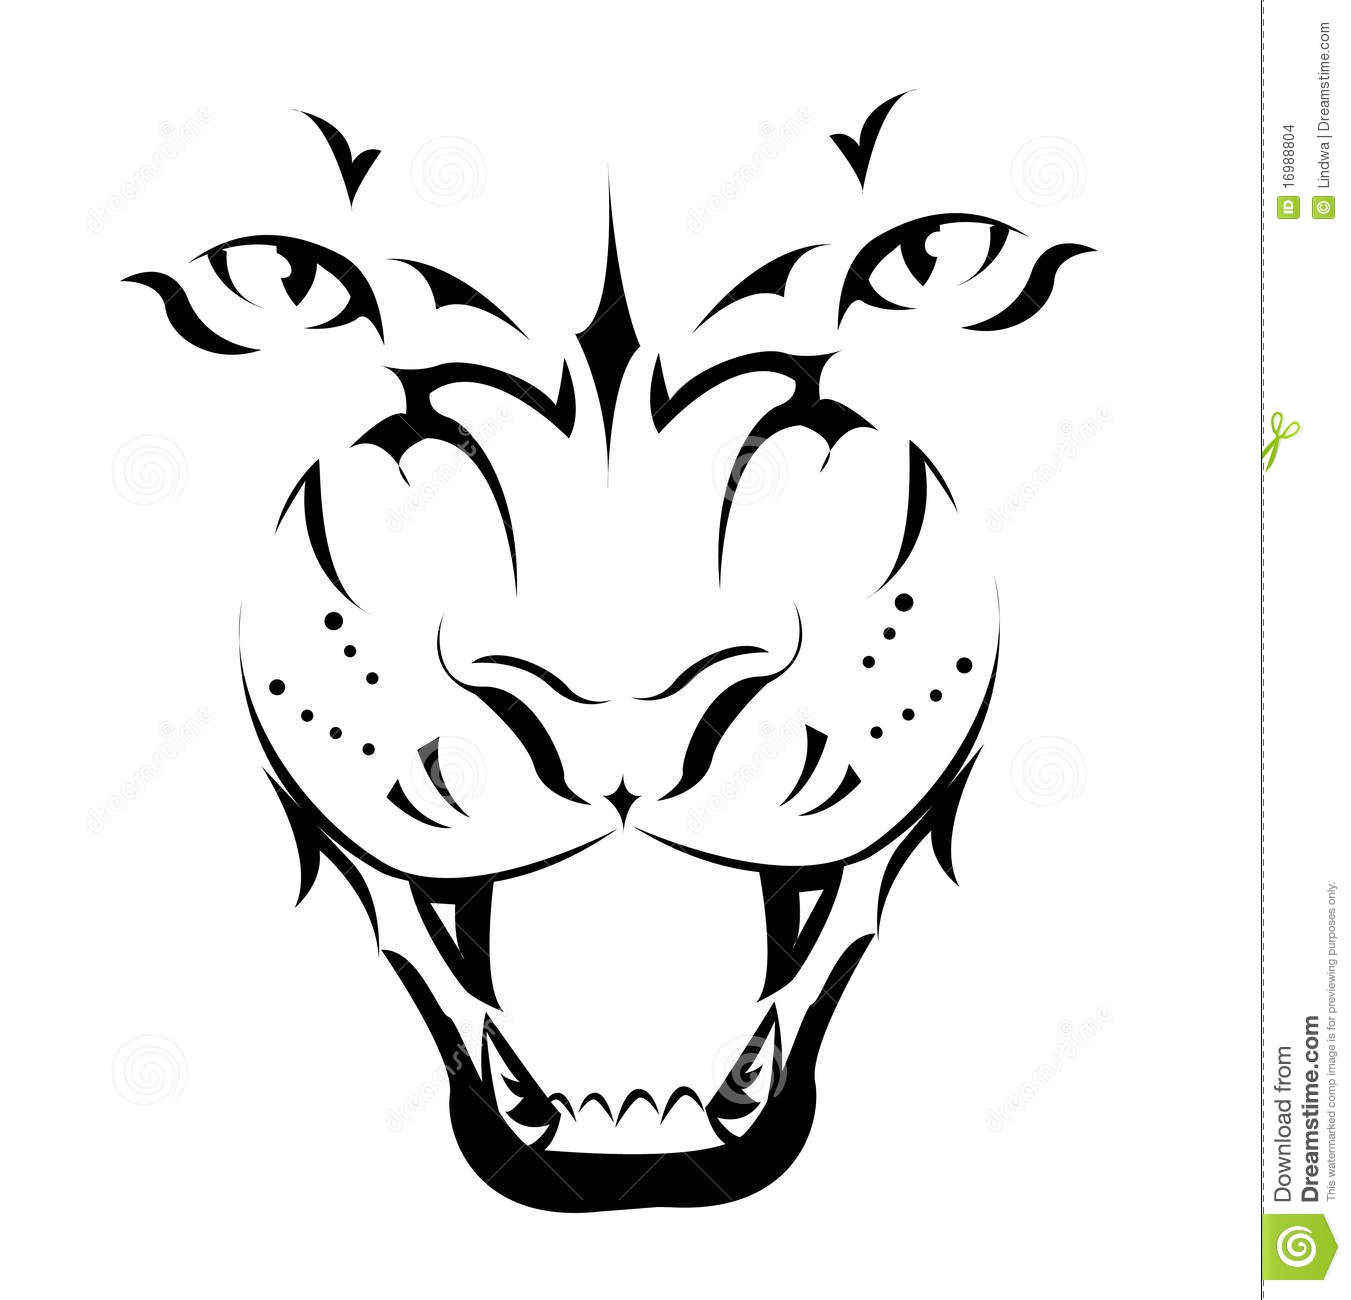 Tiger, Tattoo Stock Images - Image: 16988804